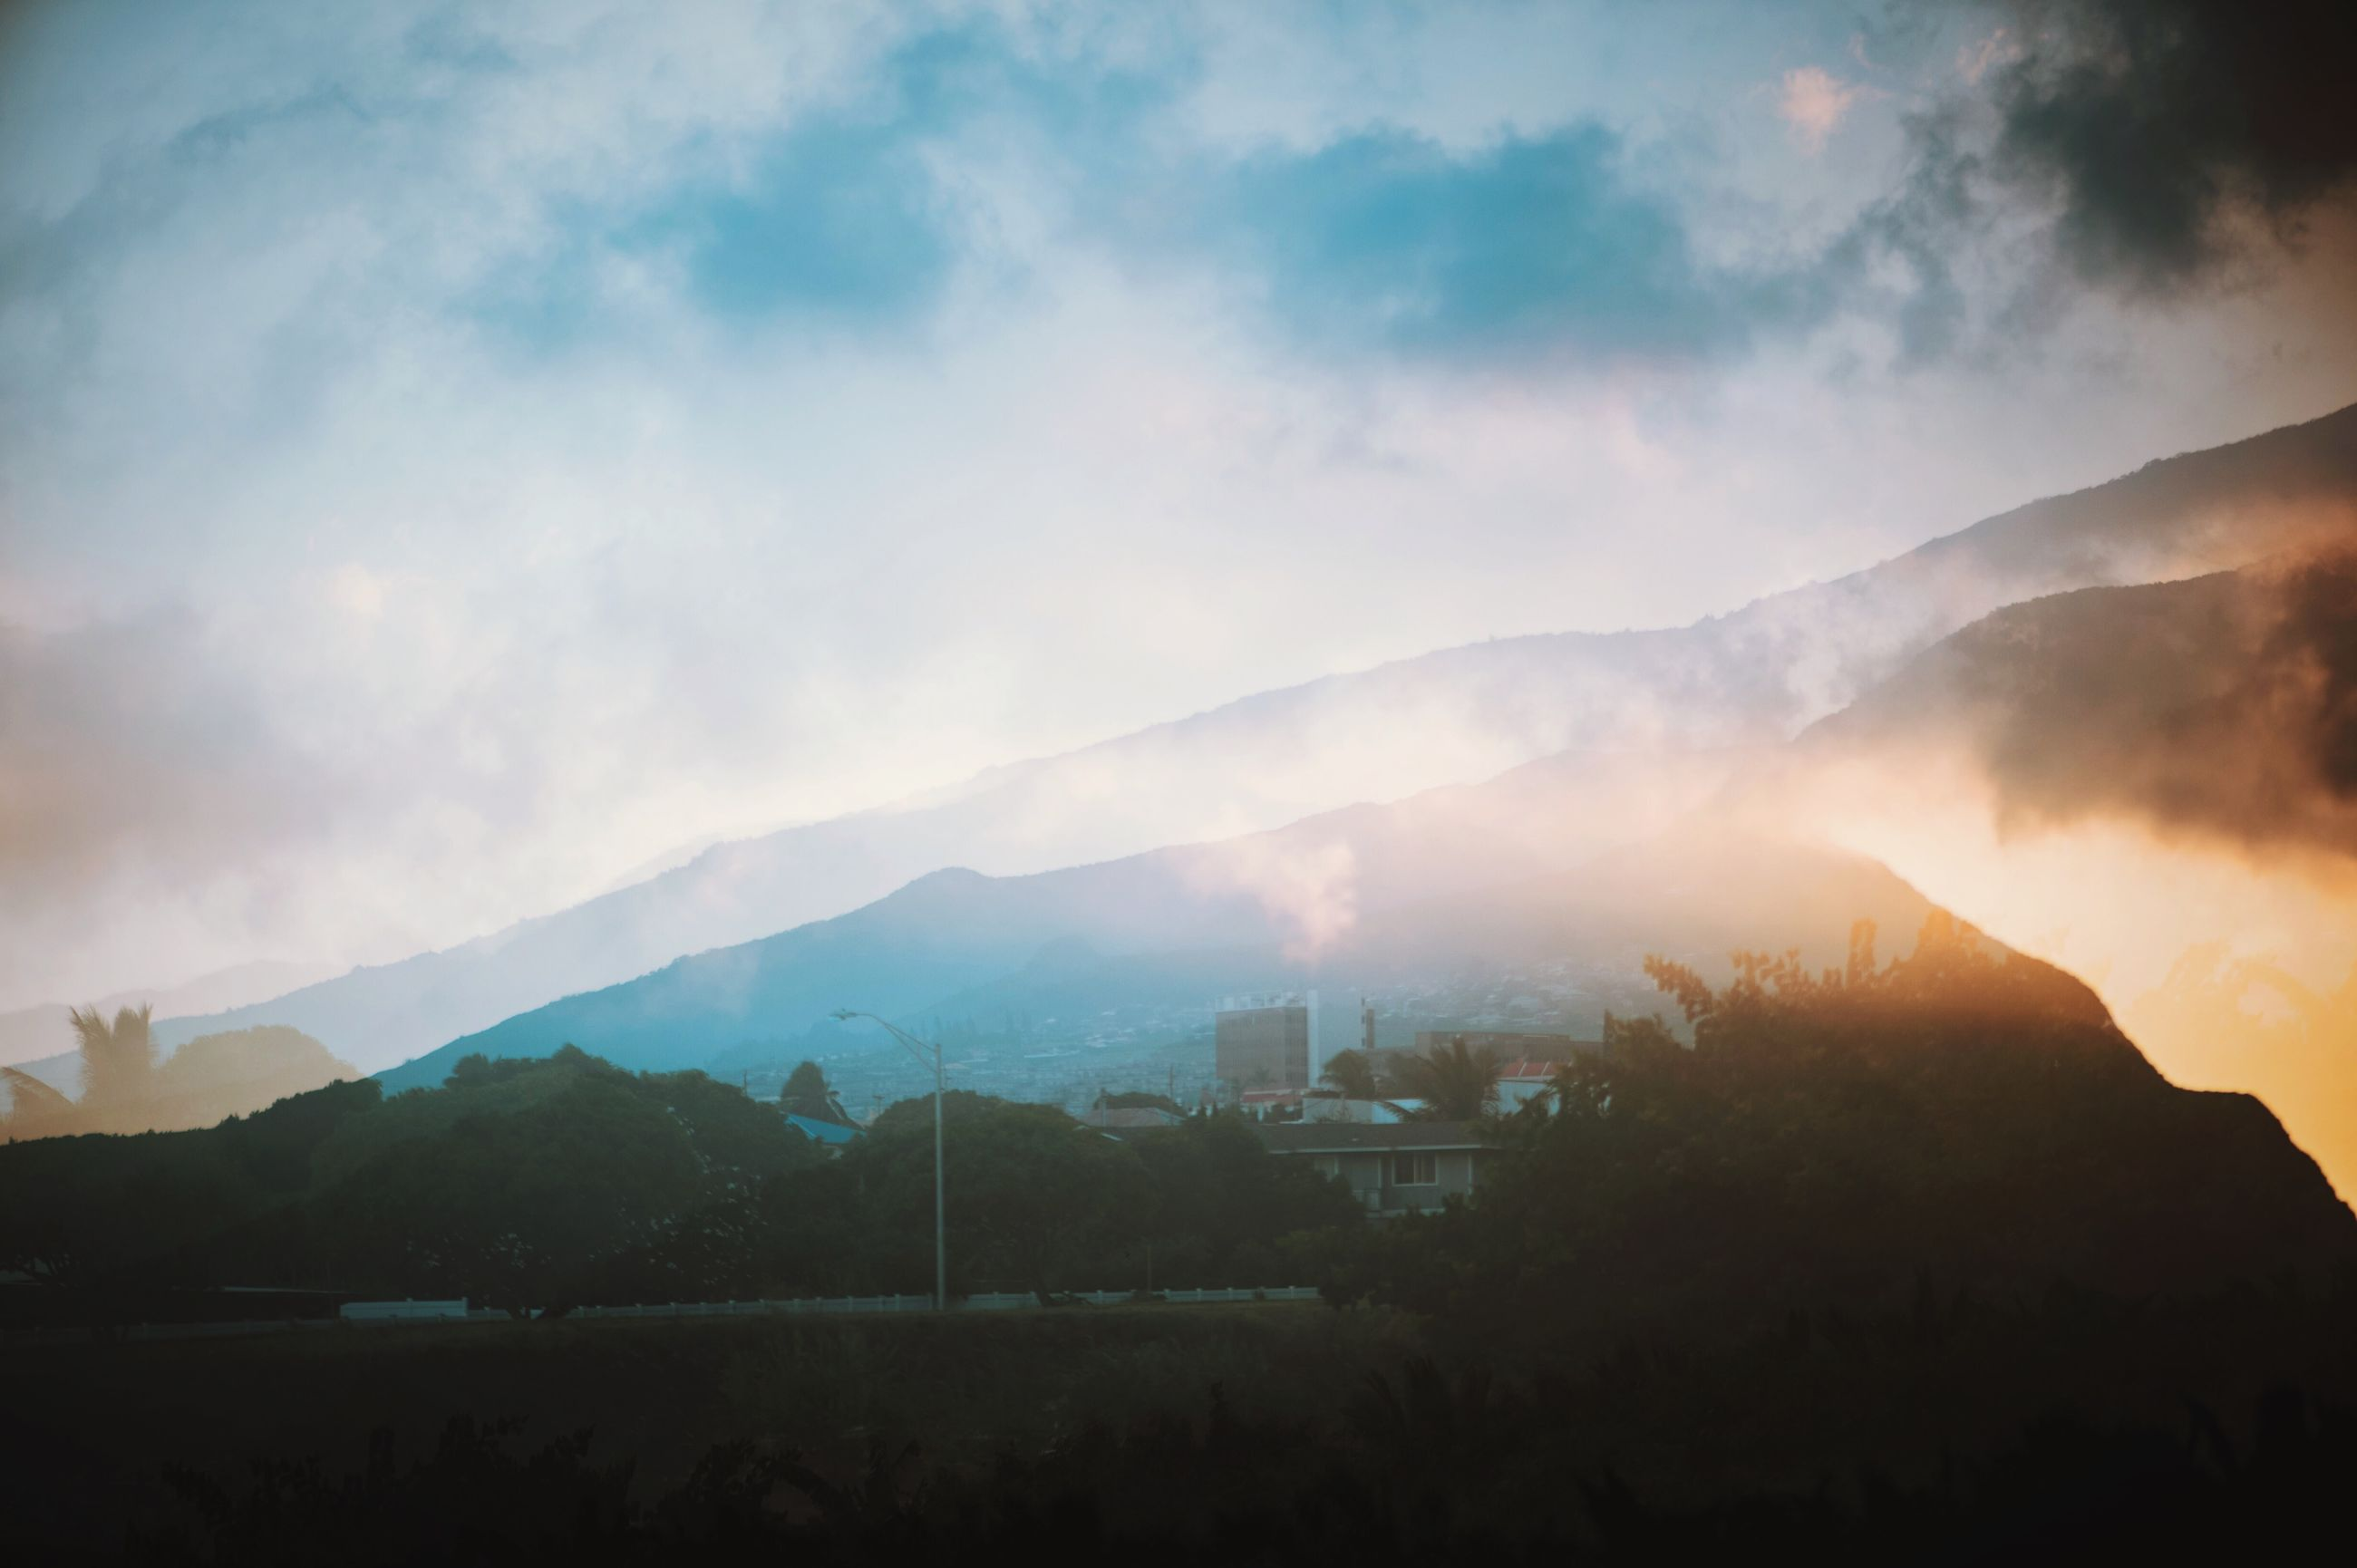 mountain, mountain range, sky, scenics, cloud - sky, beauty in nature, tranquil scene, tranquility, nature, cloudy, landscape, silhouette, weather, cloud, sunset, built structure, building exterior, dusk, architecture, idyllic